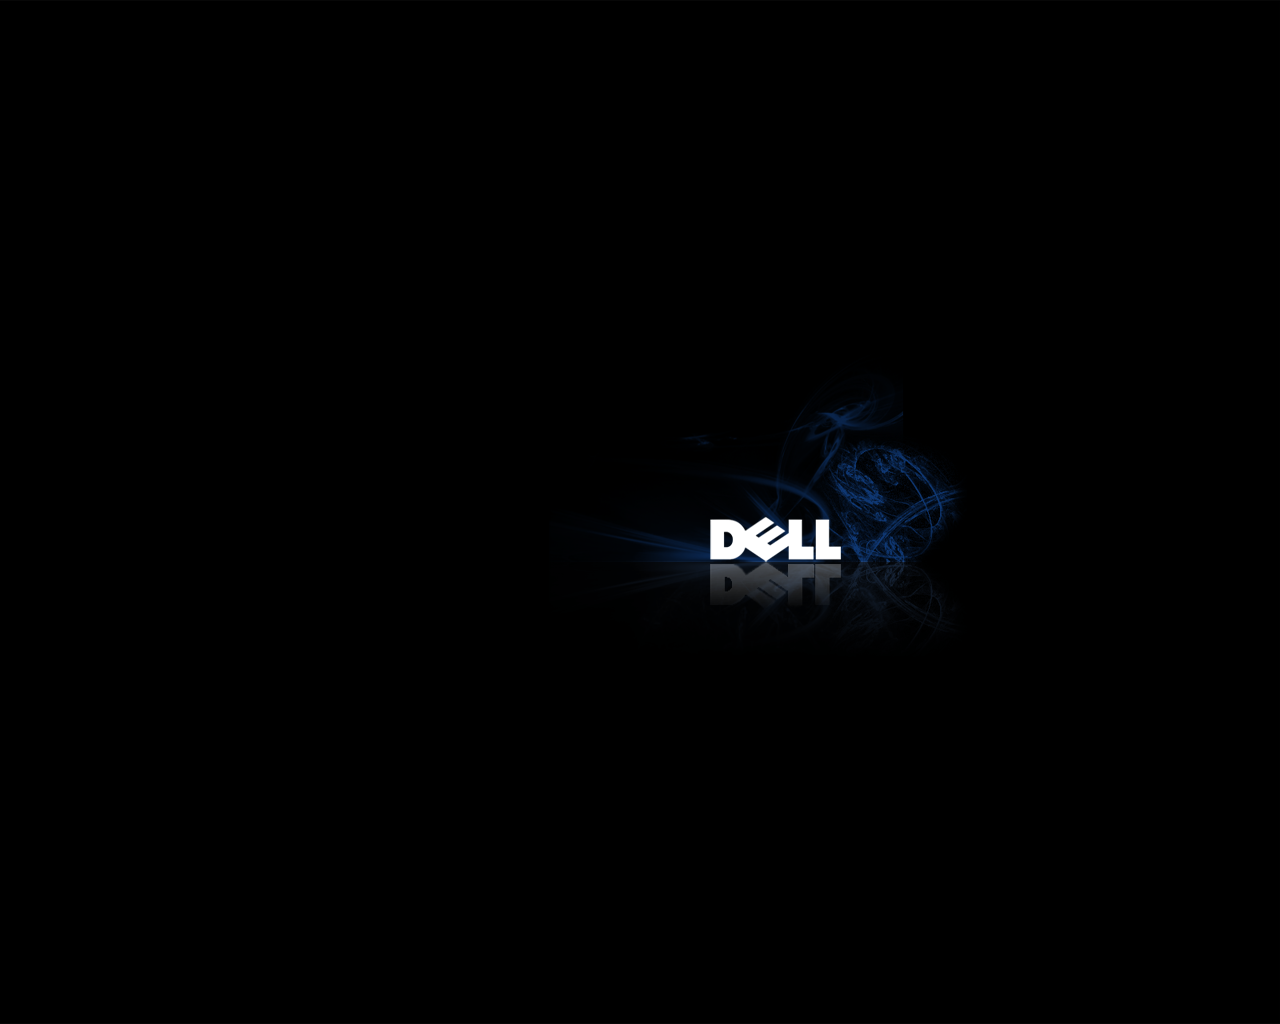 Dell hd wallpapers latest hd wallpapers for The latest wallpaper